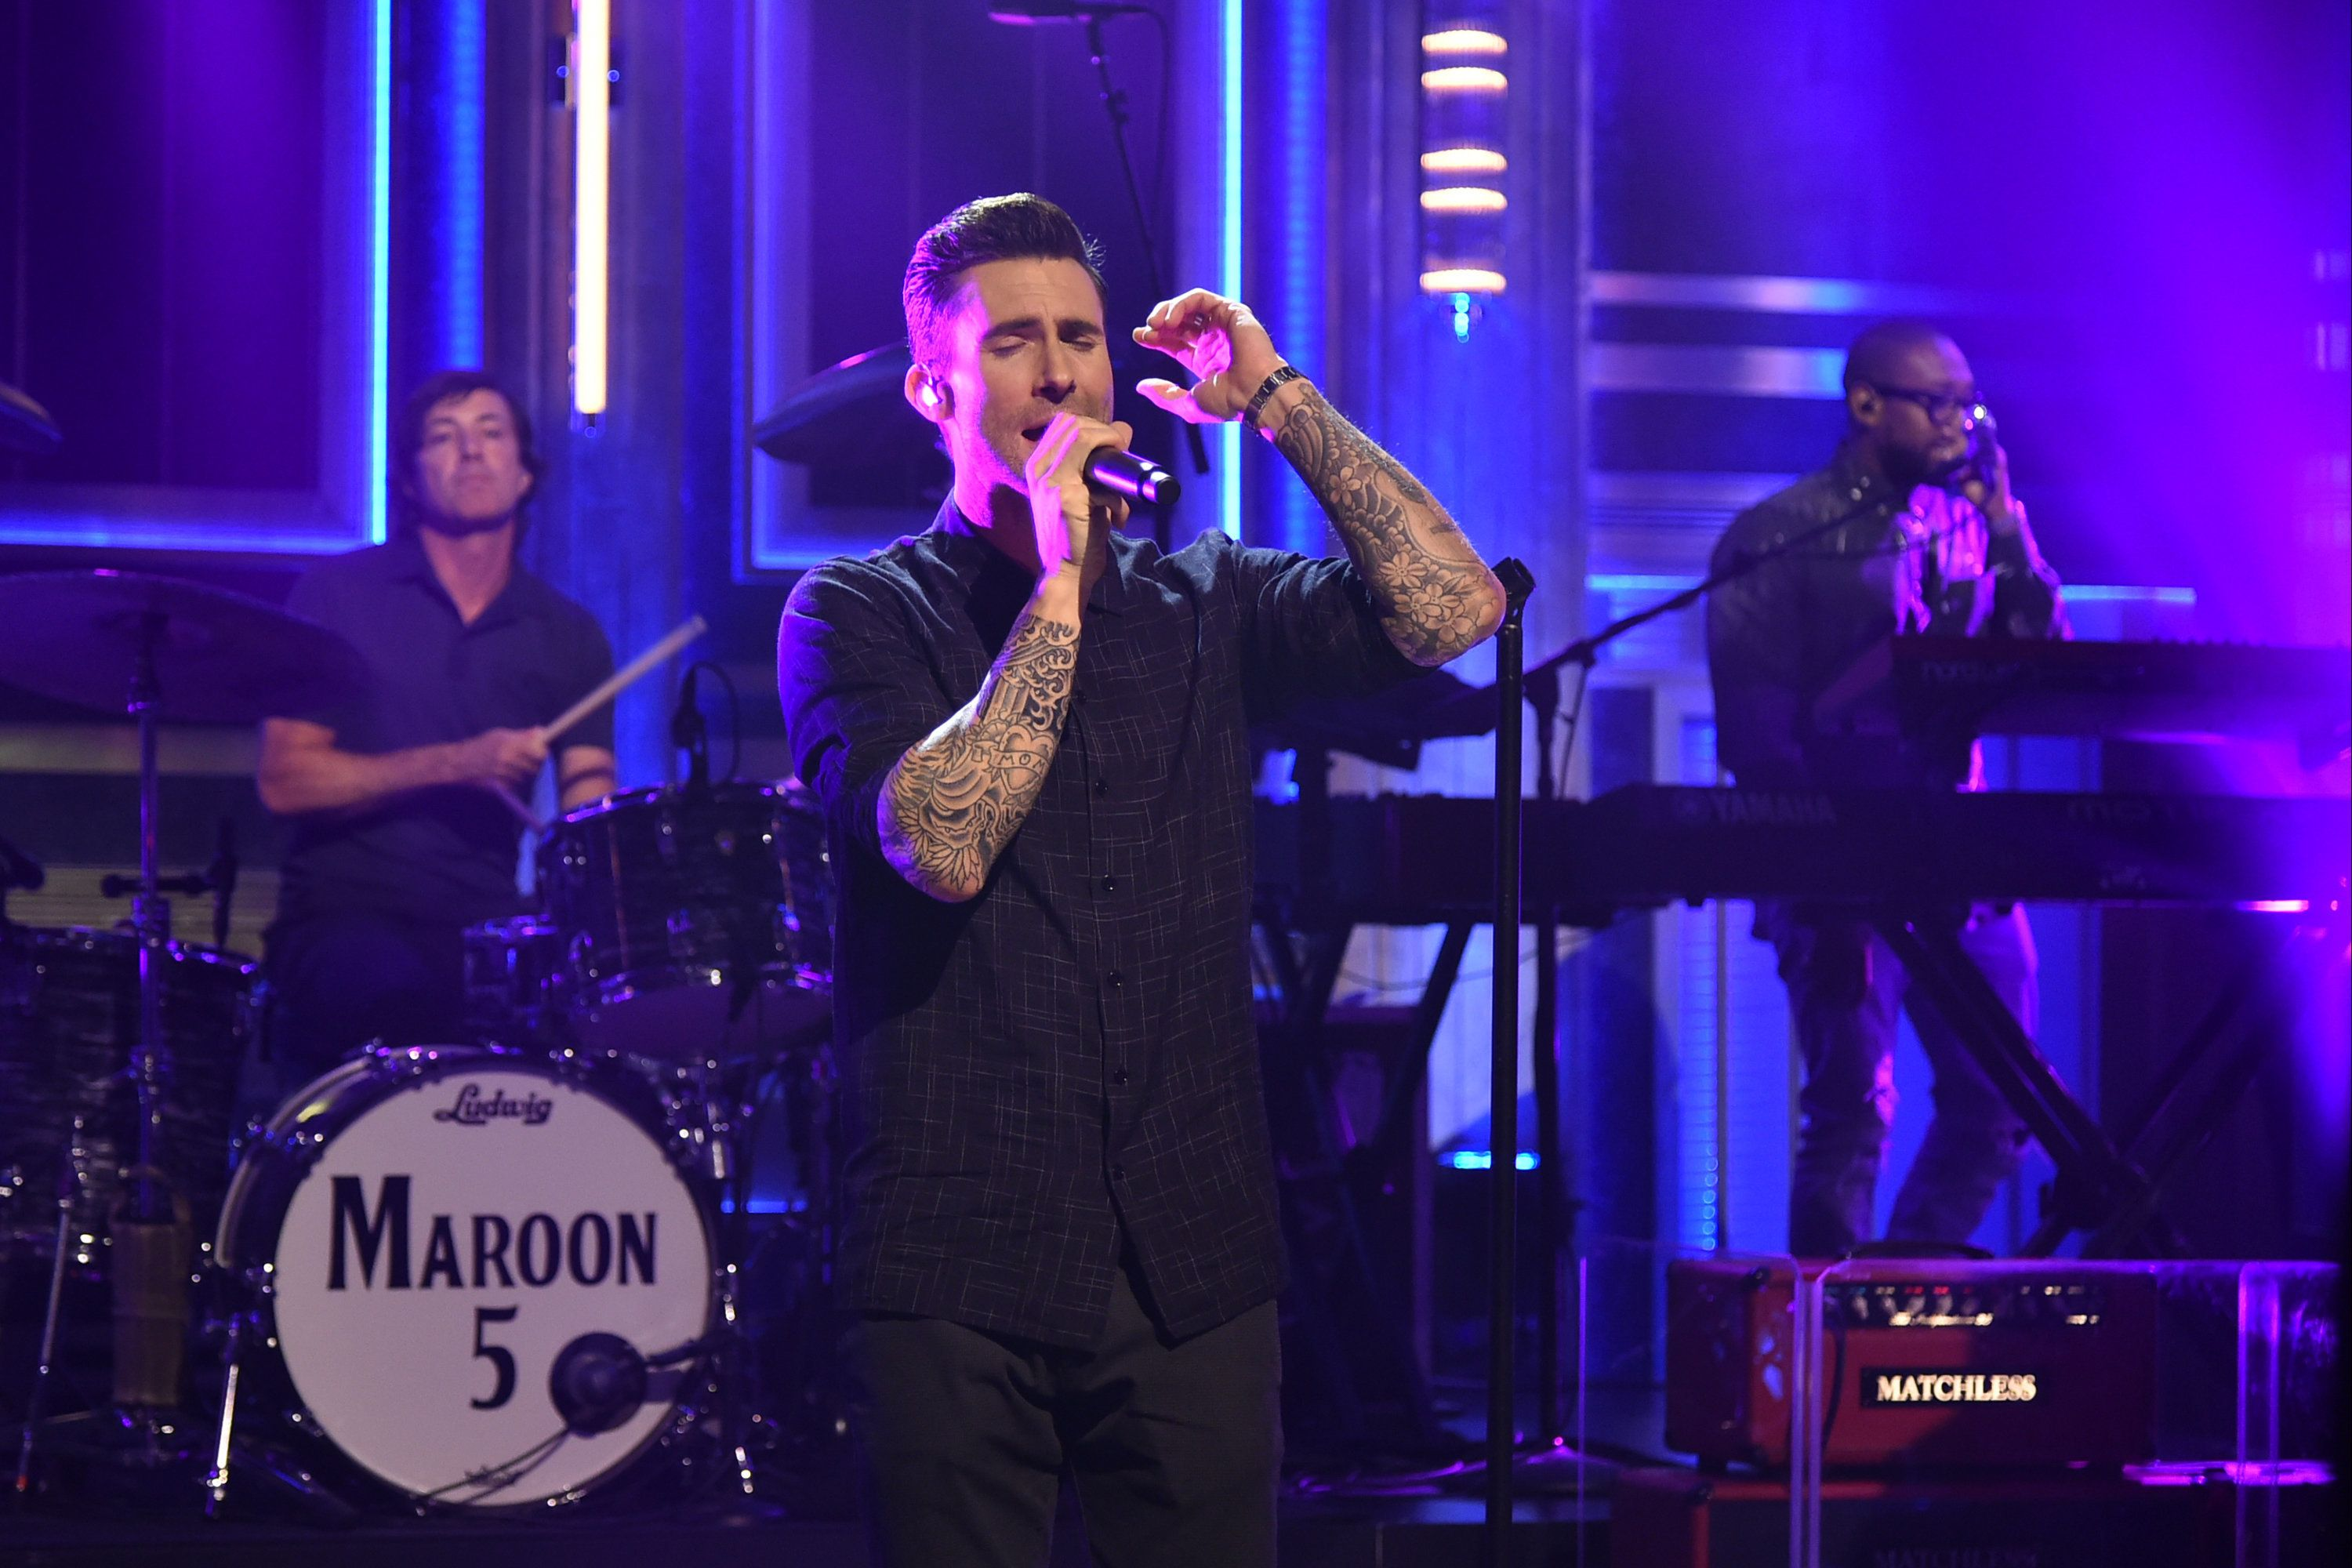 THE TONIGHT SHOW STARRING JIMMY FALLON -- Episode 0115 -- Pictured: (l-r) Matt Flynn, Adam Levine and Paul Morton of musical guest Maroon 5 perform on September 2, 2014 -- (Photo by: Theo Wargo/NBC/NBCU Photo Bank via Getty Images)